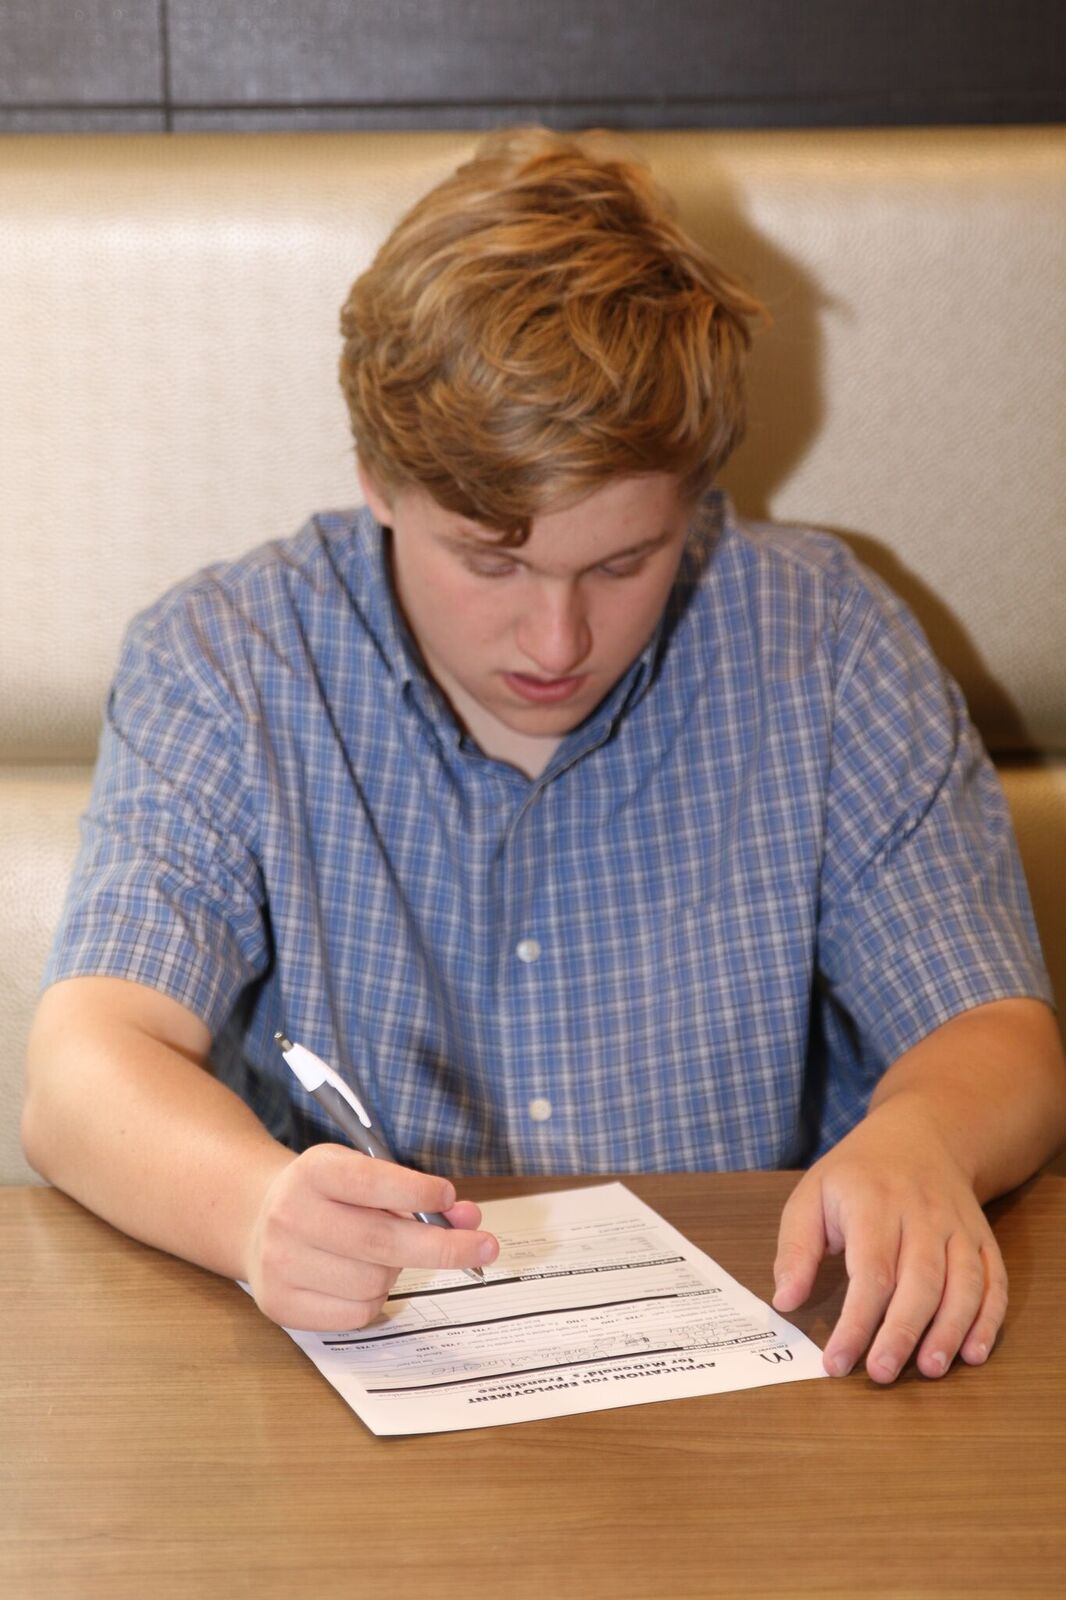 Carter Dodd fills out his application to work at McDonald's.